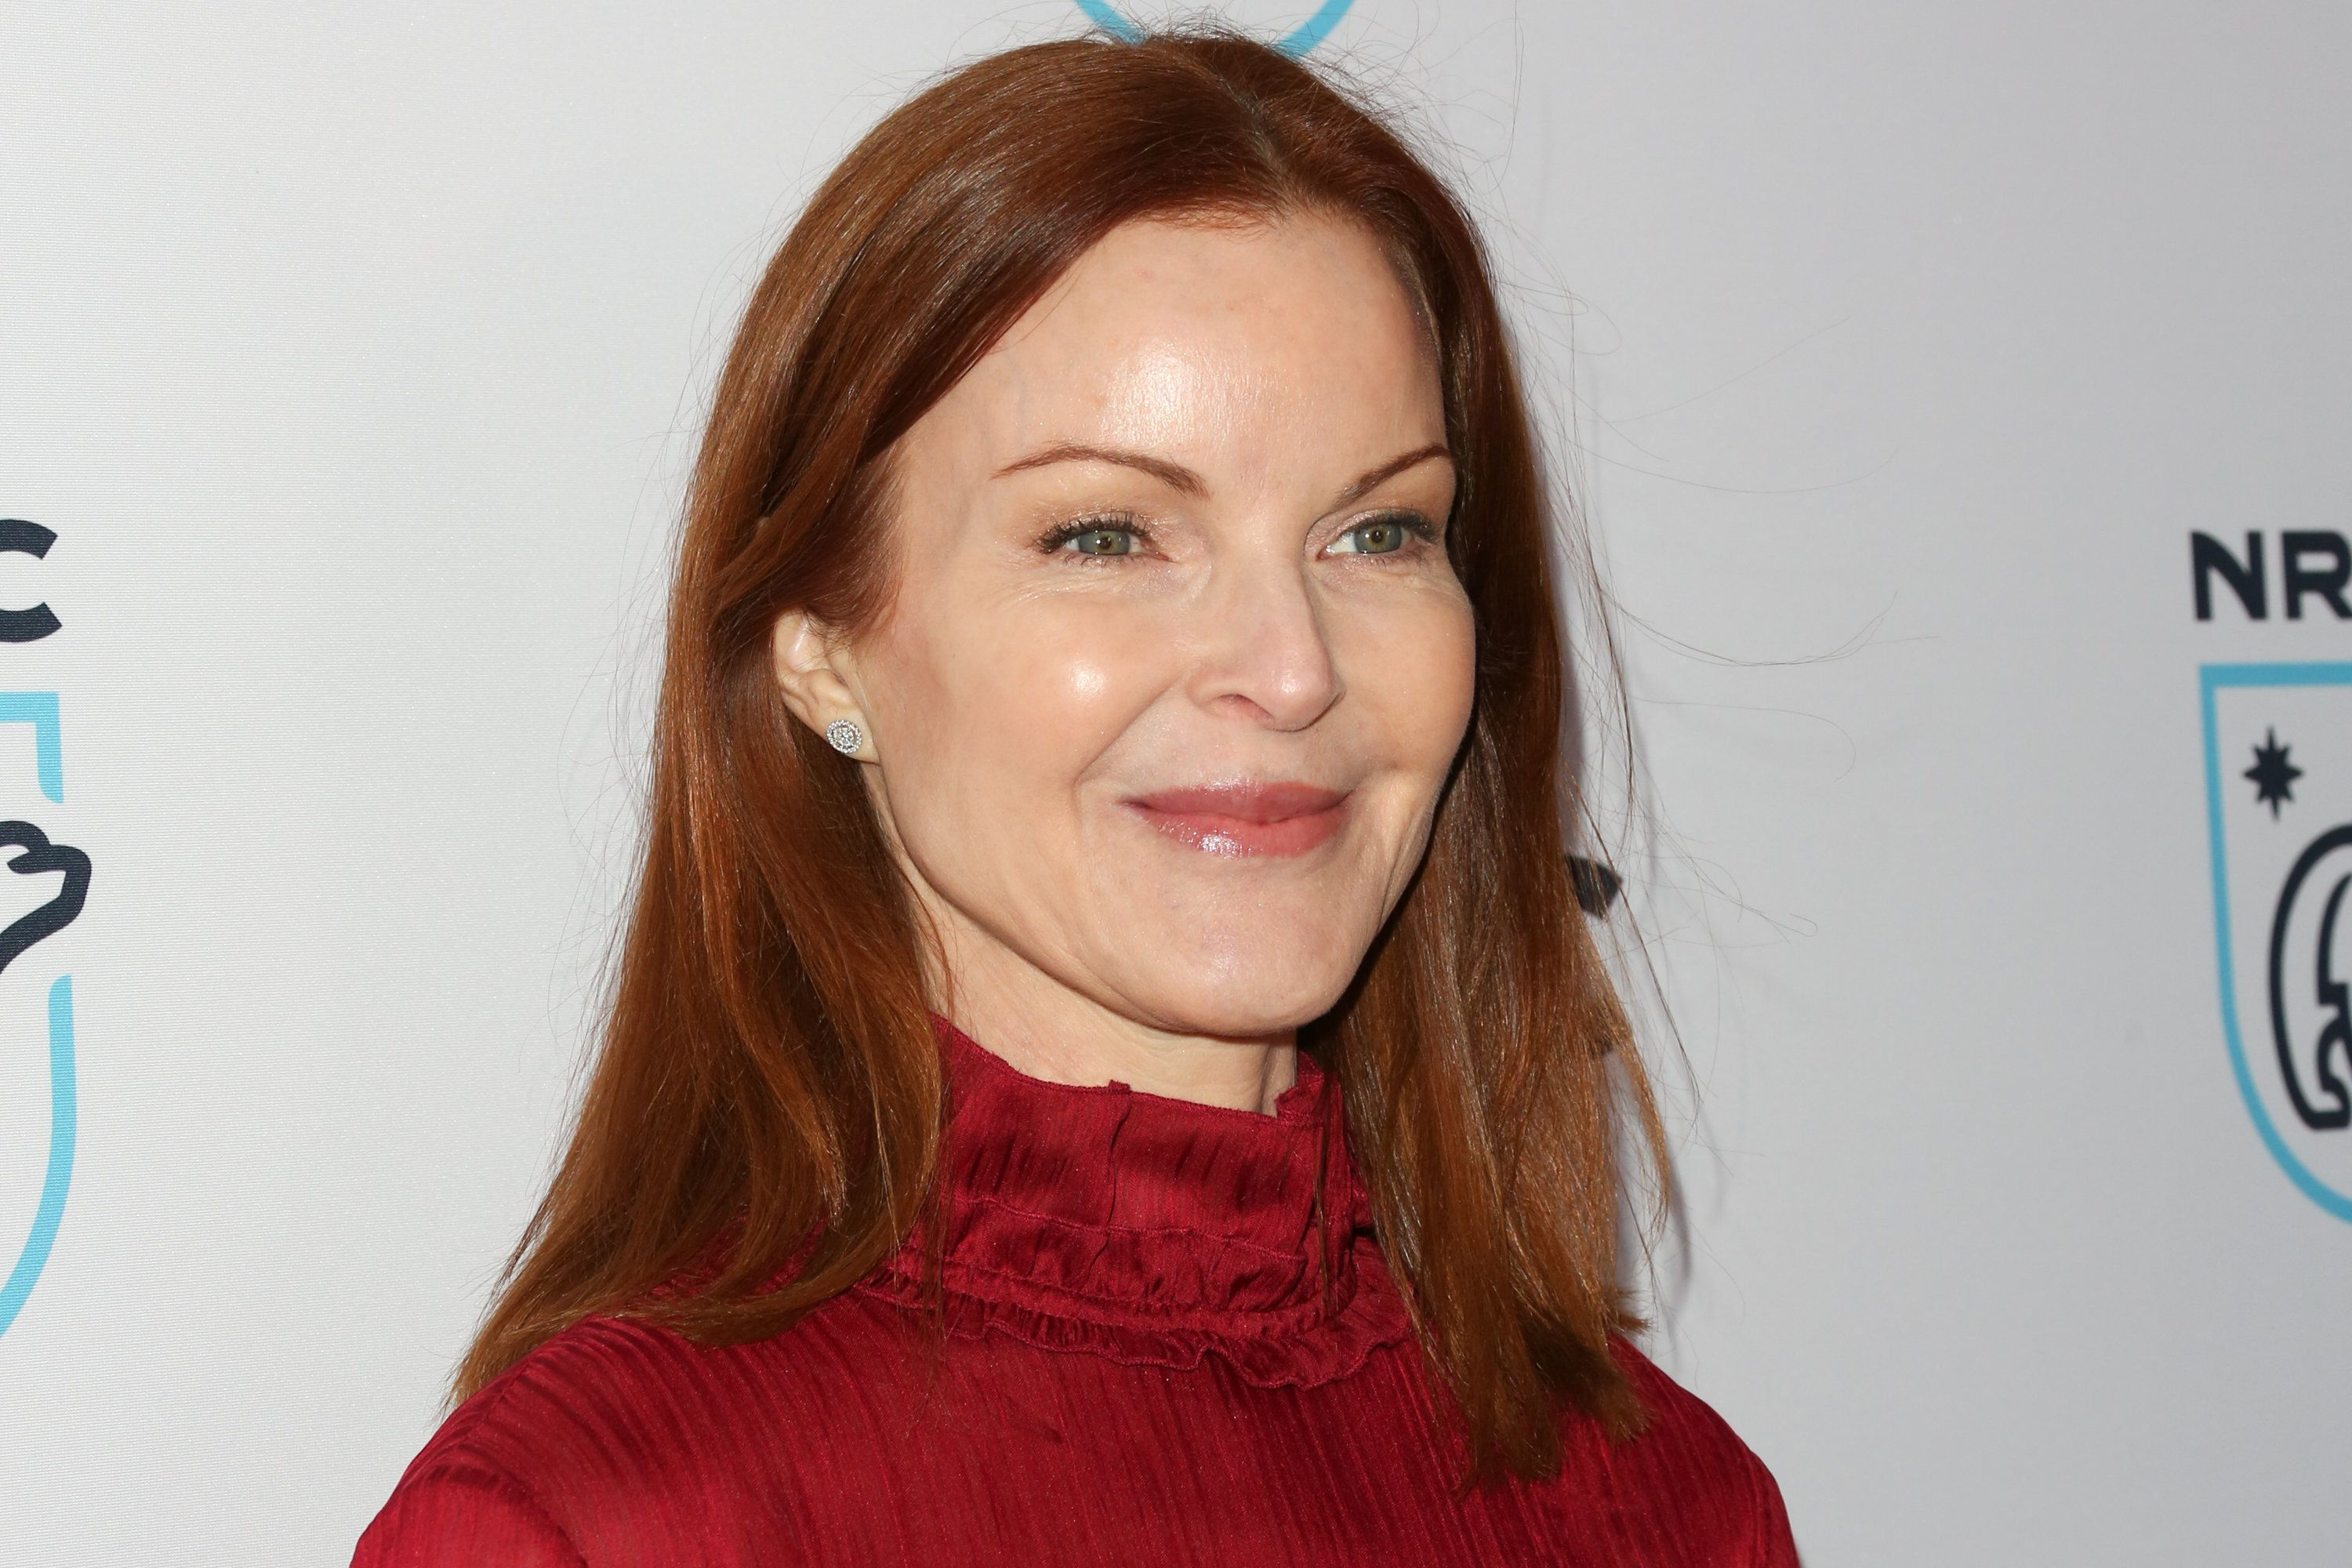 'Desperate Housewives' Star Marcia Cross Has Successfully Completed Treatment For Anal